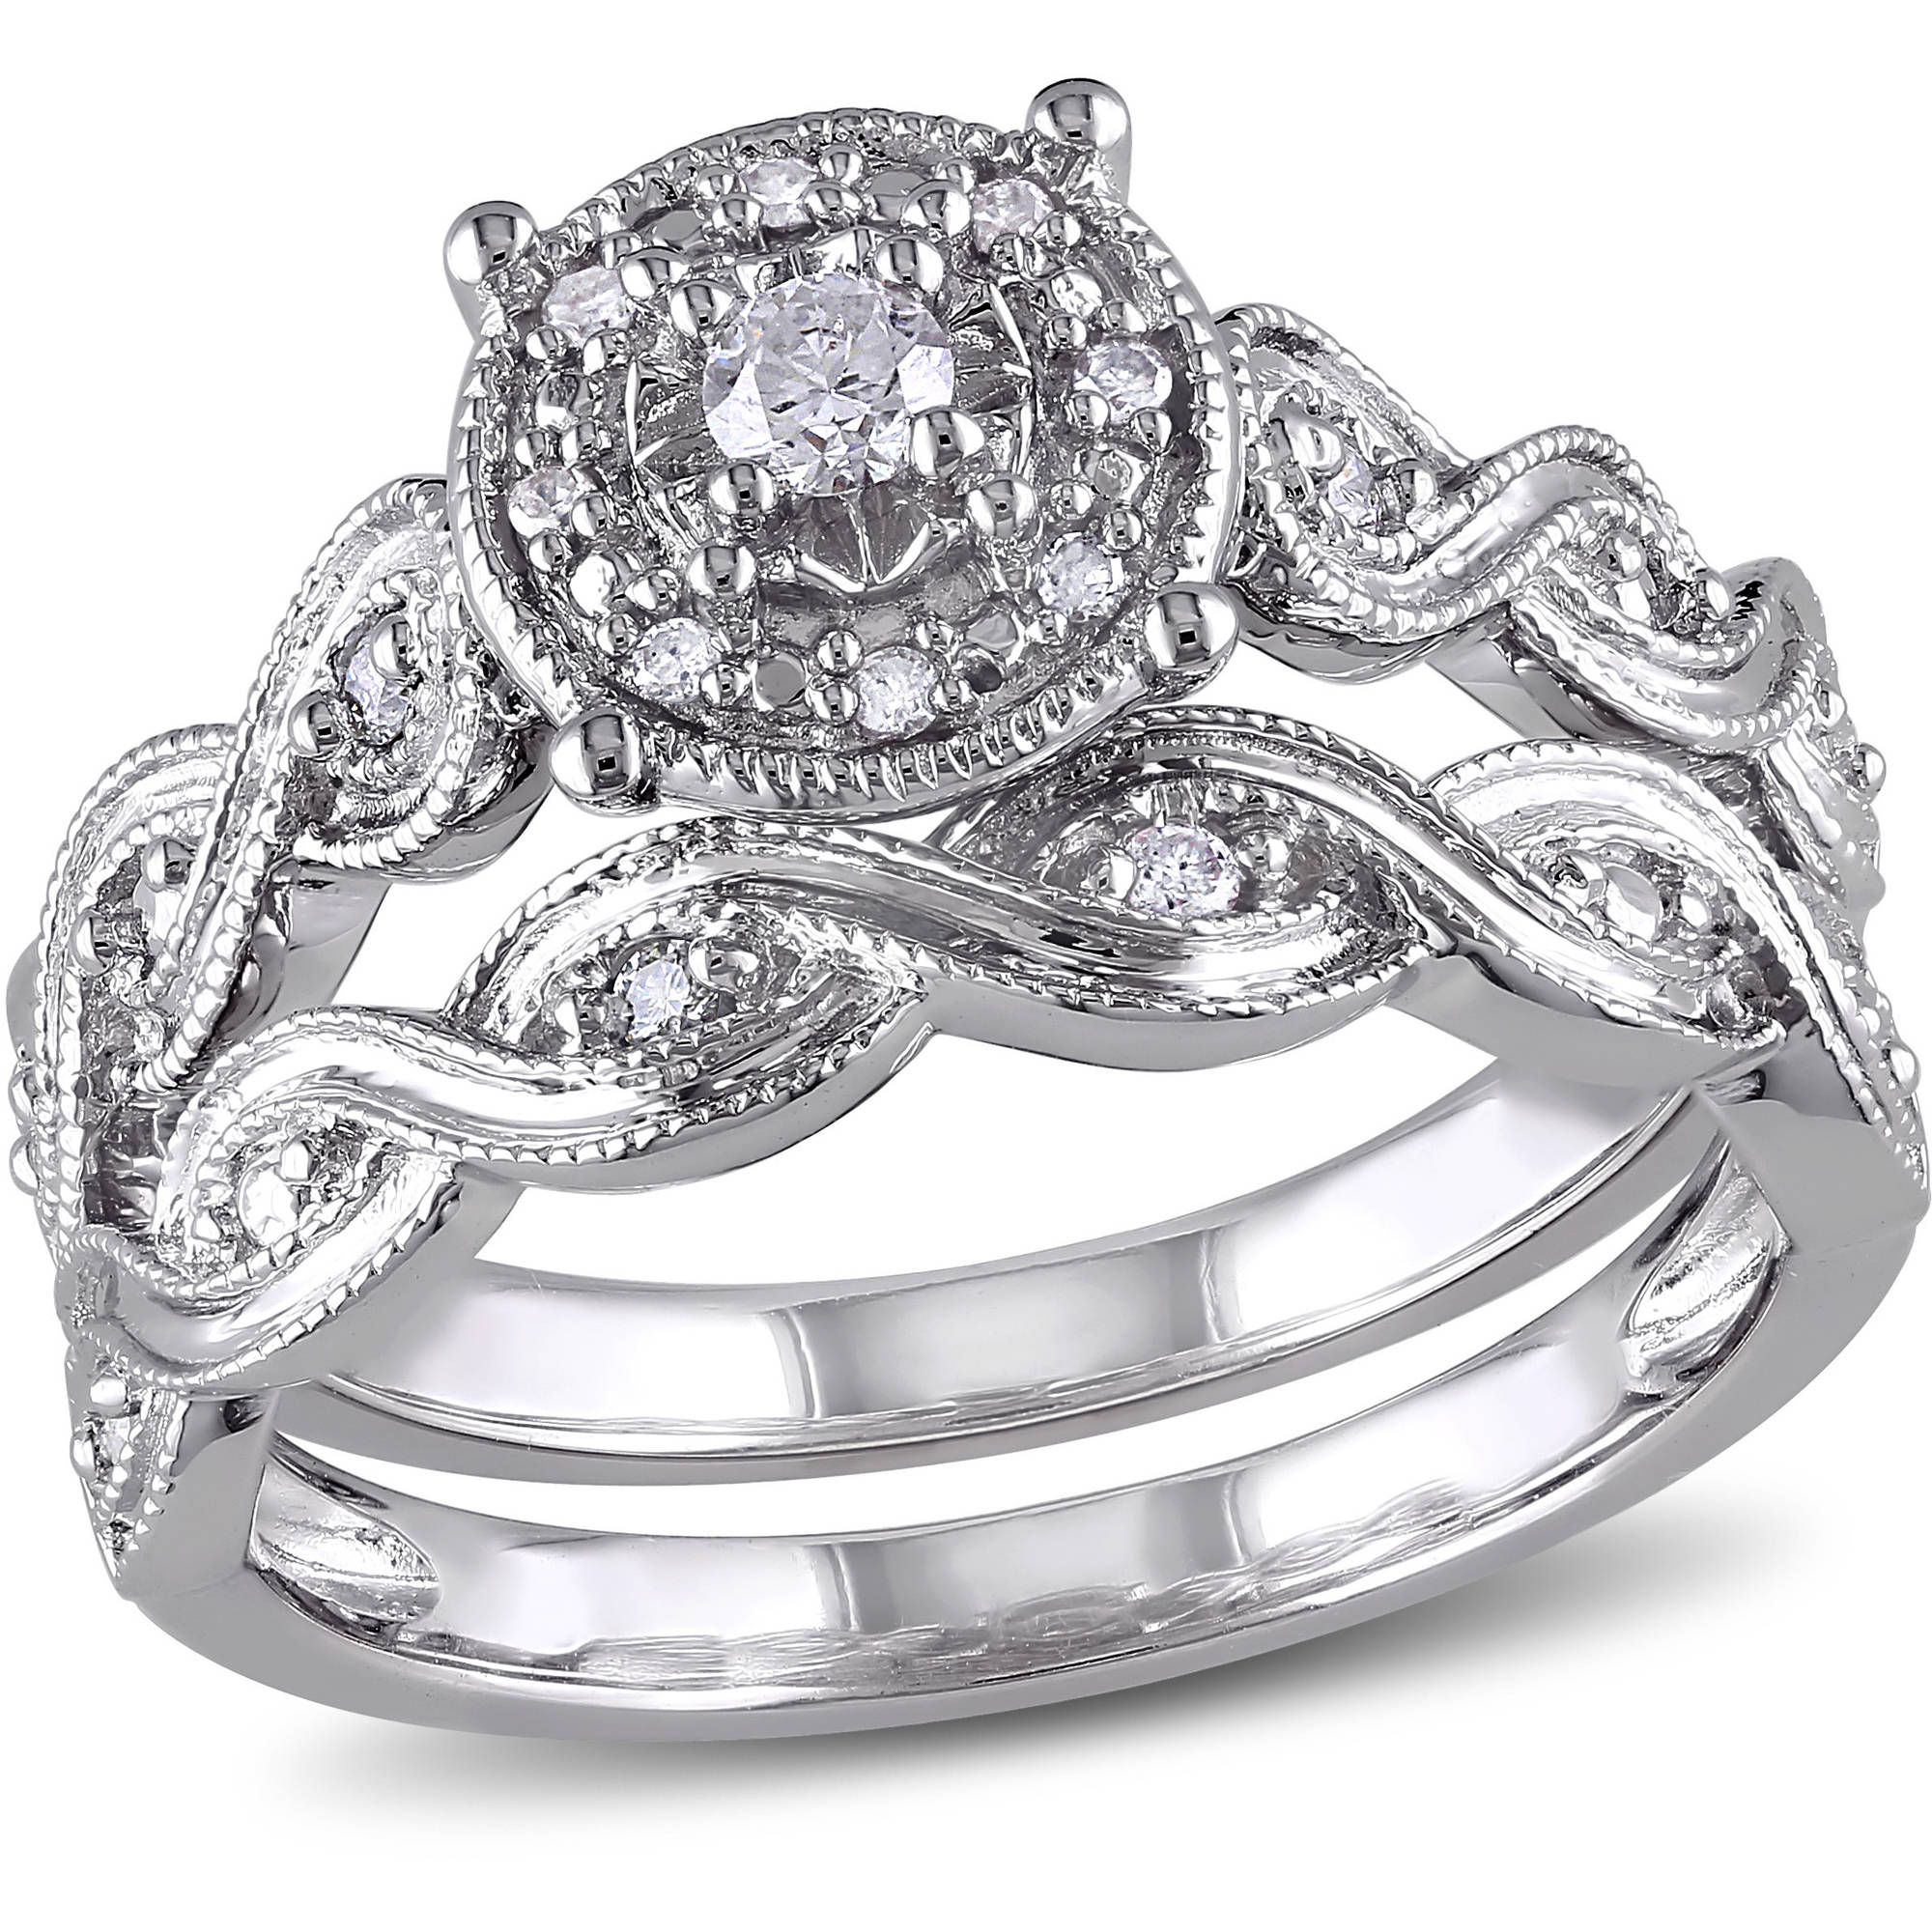 Miabella 1/5 Carat T.W. Diamond Sterling Silver Halo Infinity Bridal Set